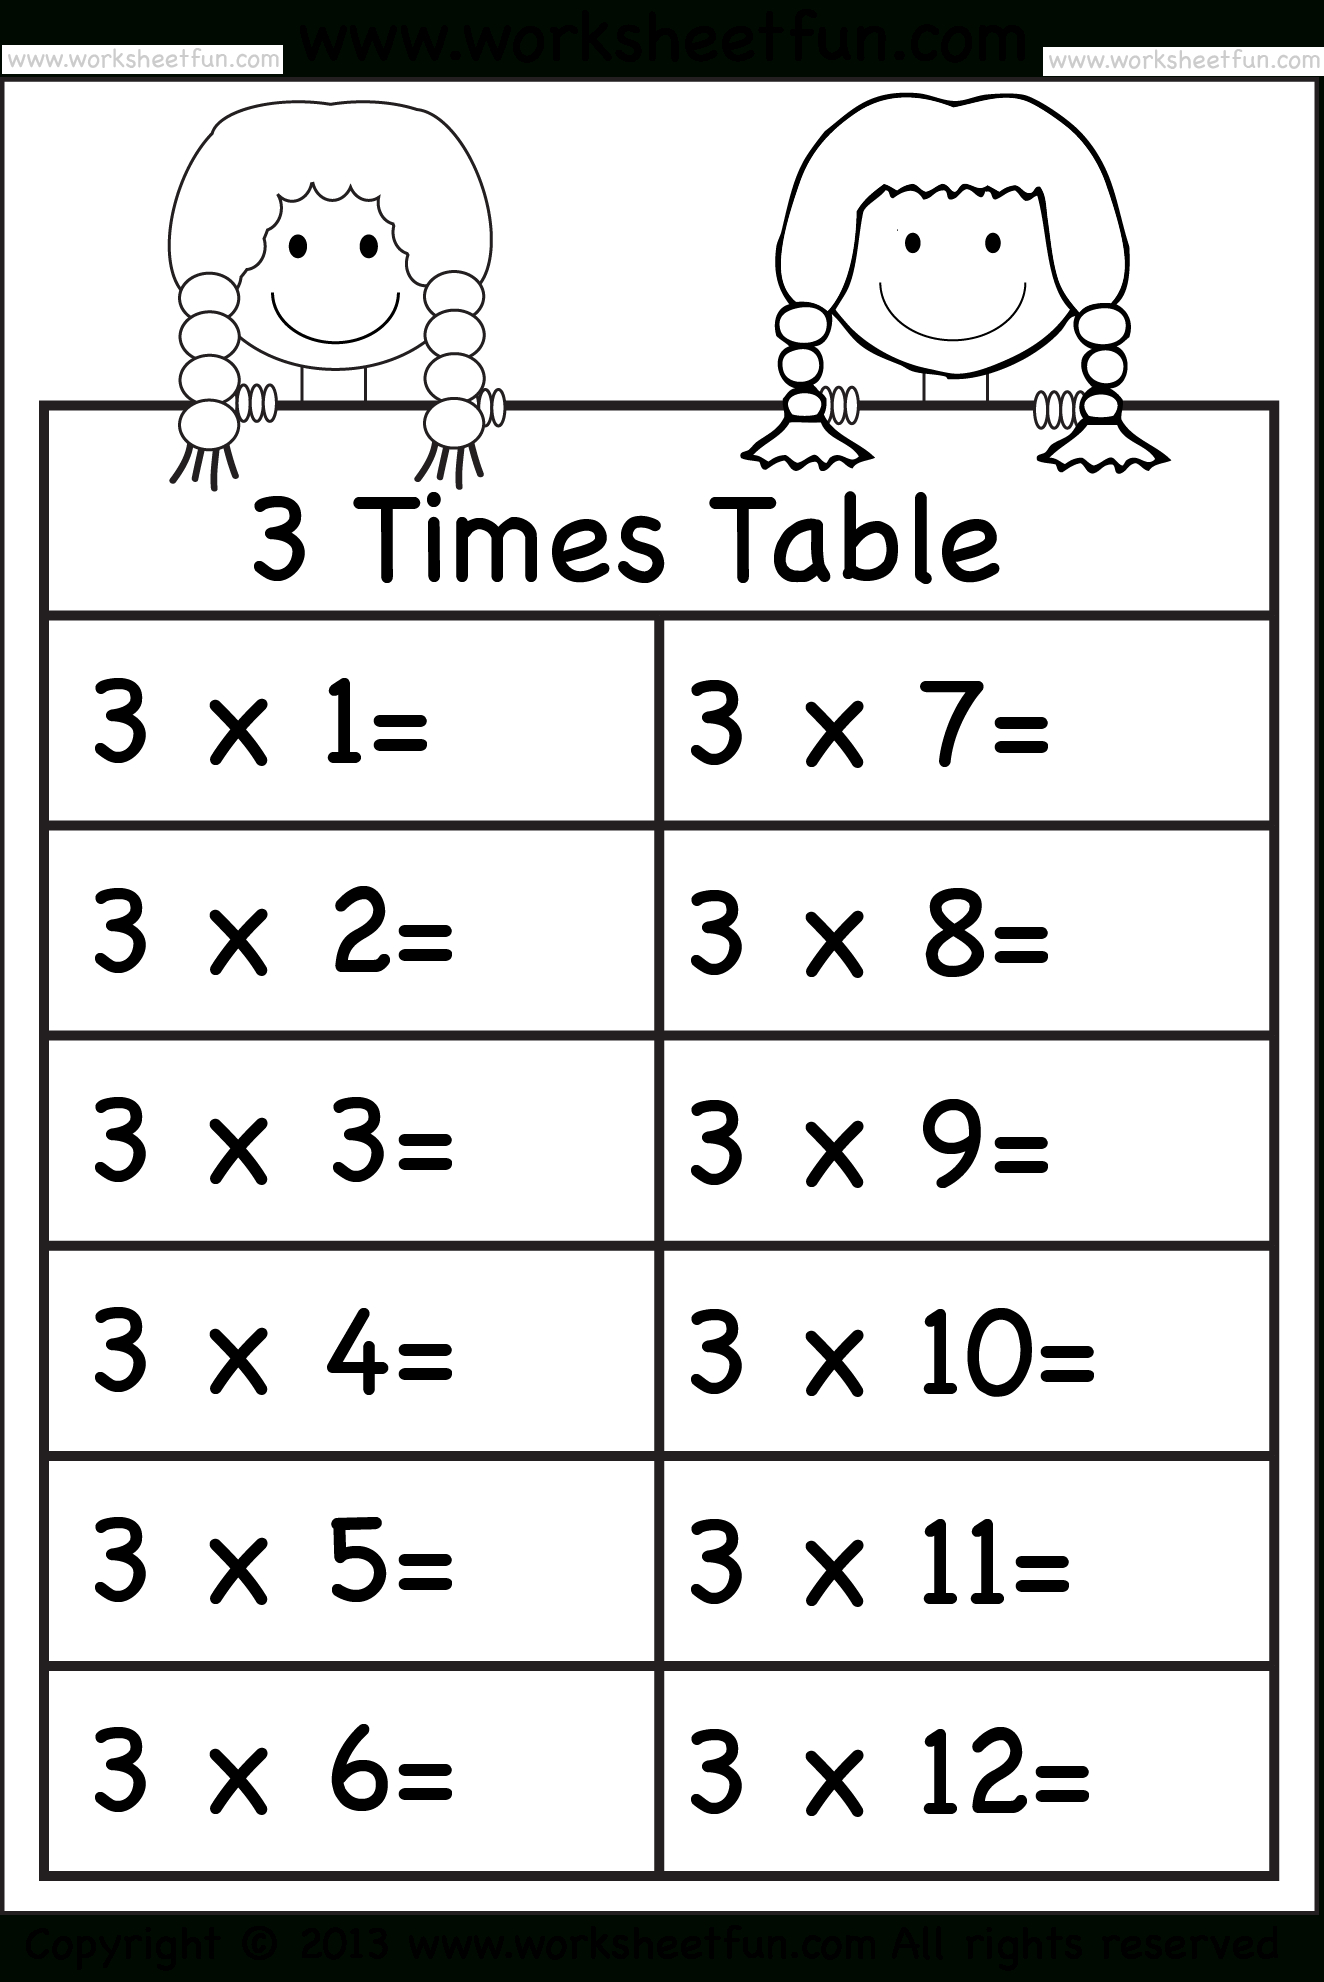 Times Tables Worksheets – 2, 3, 4, 5, 6, 7, 8, 9, 10, 11 And for Multiplication Worksheets 5 6 7